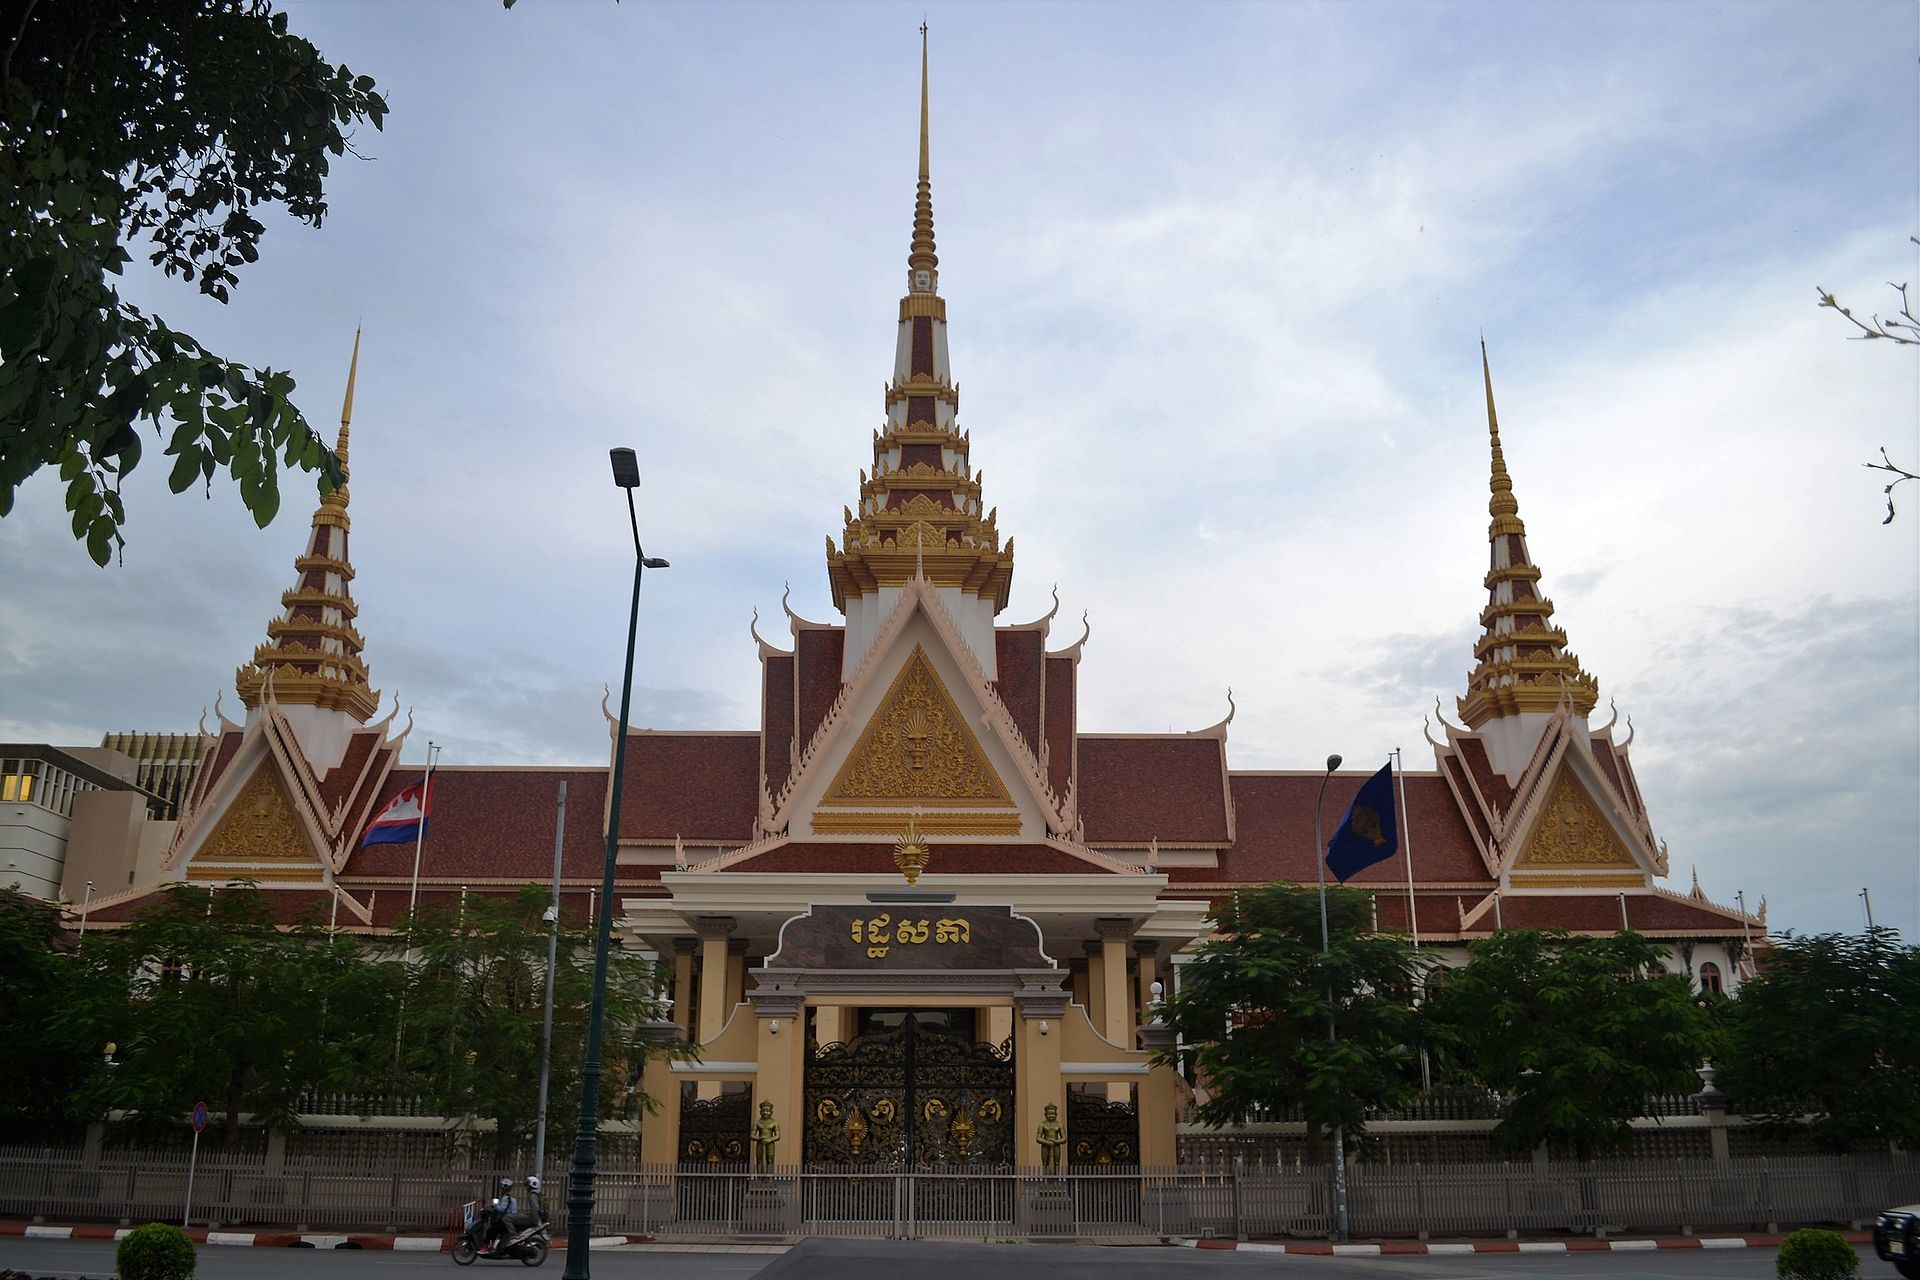 The Cambodian National Assembly